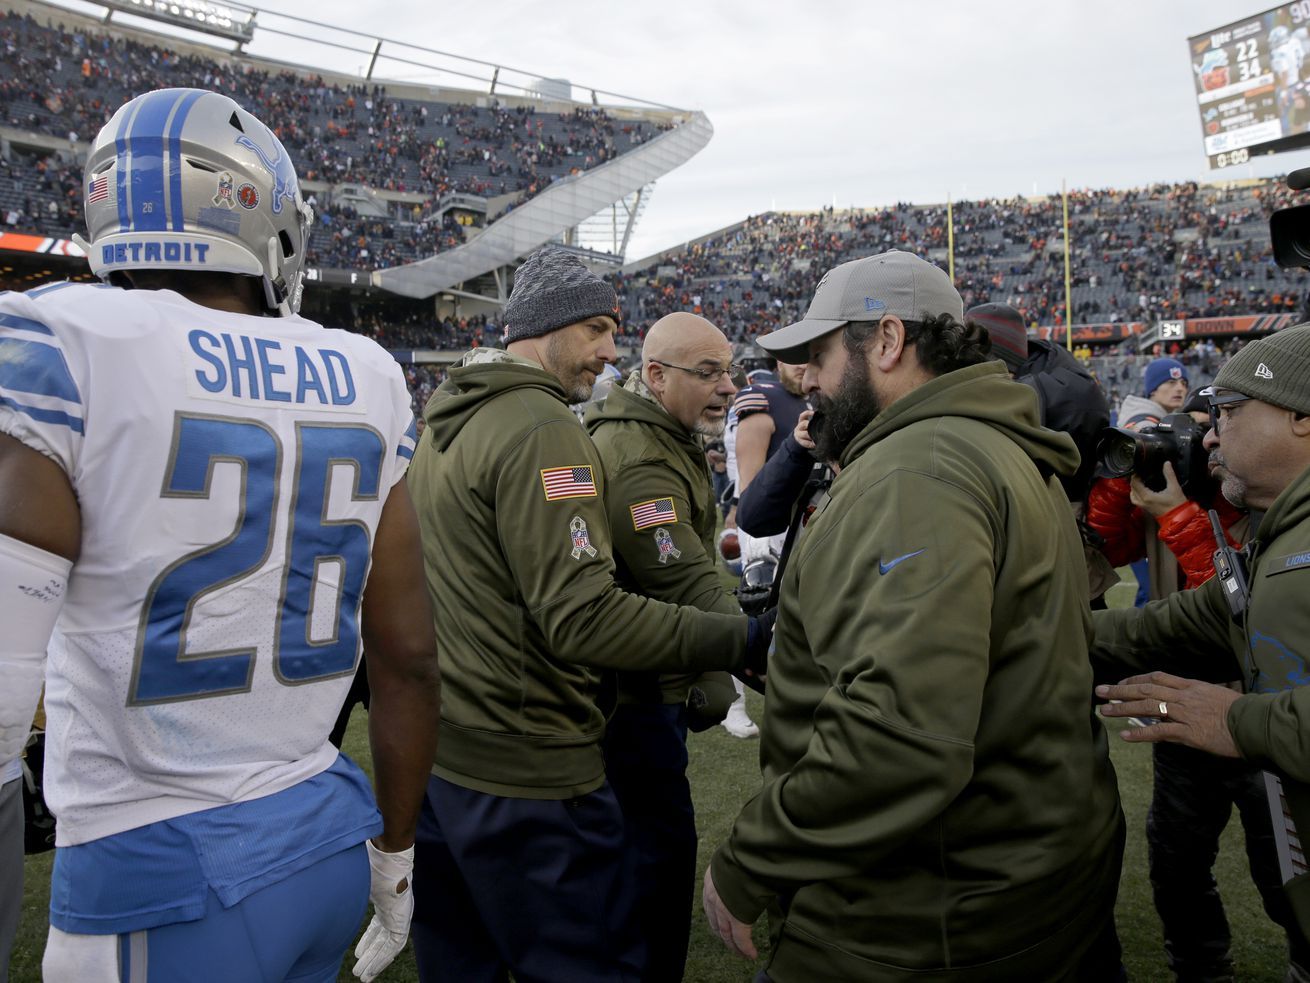 Bears coach Matt Nagy greets Lions coach Matt Patricia after the Bears' 34-22 victory over hte Lions on Nov. 11, 2018 at Soldier Field.